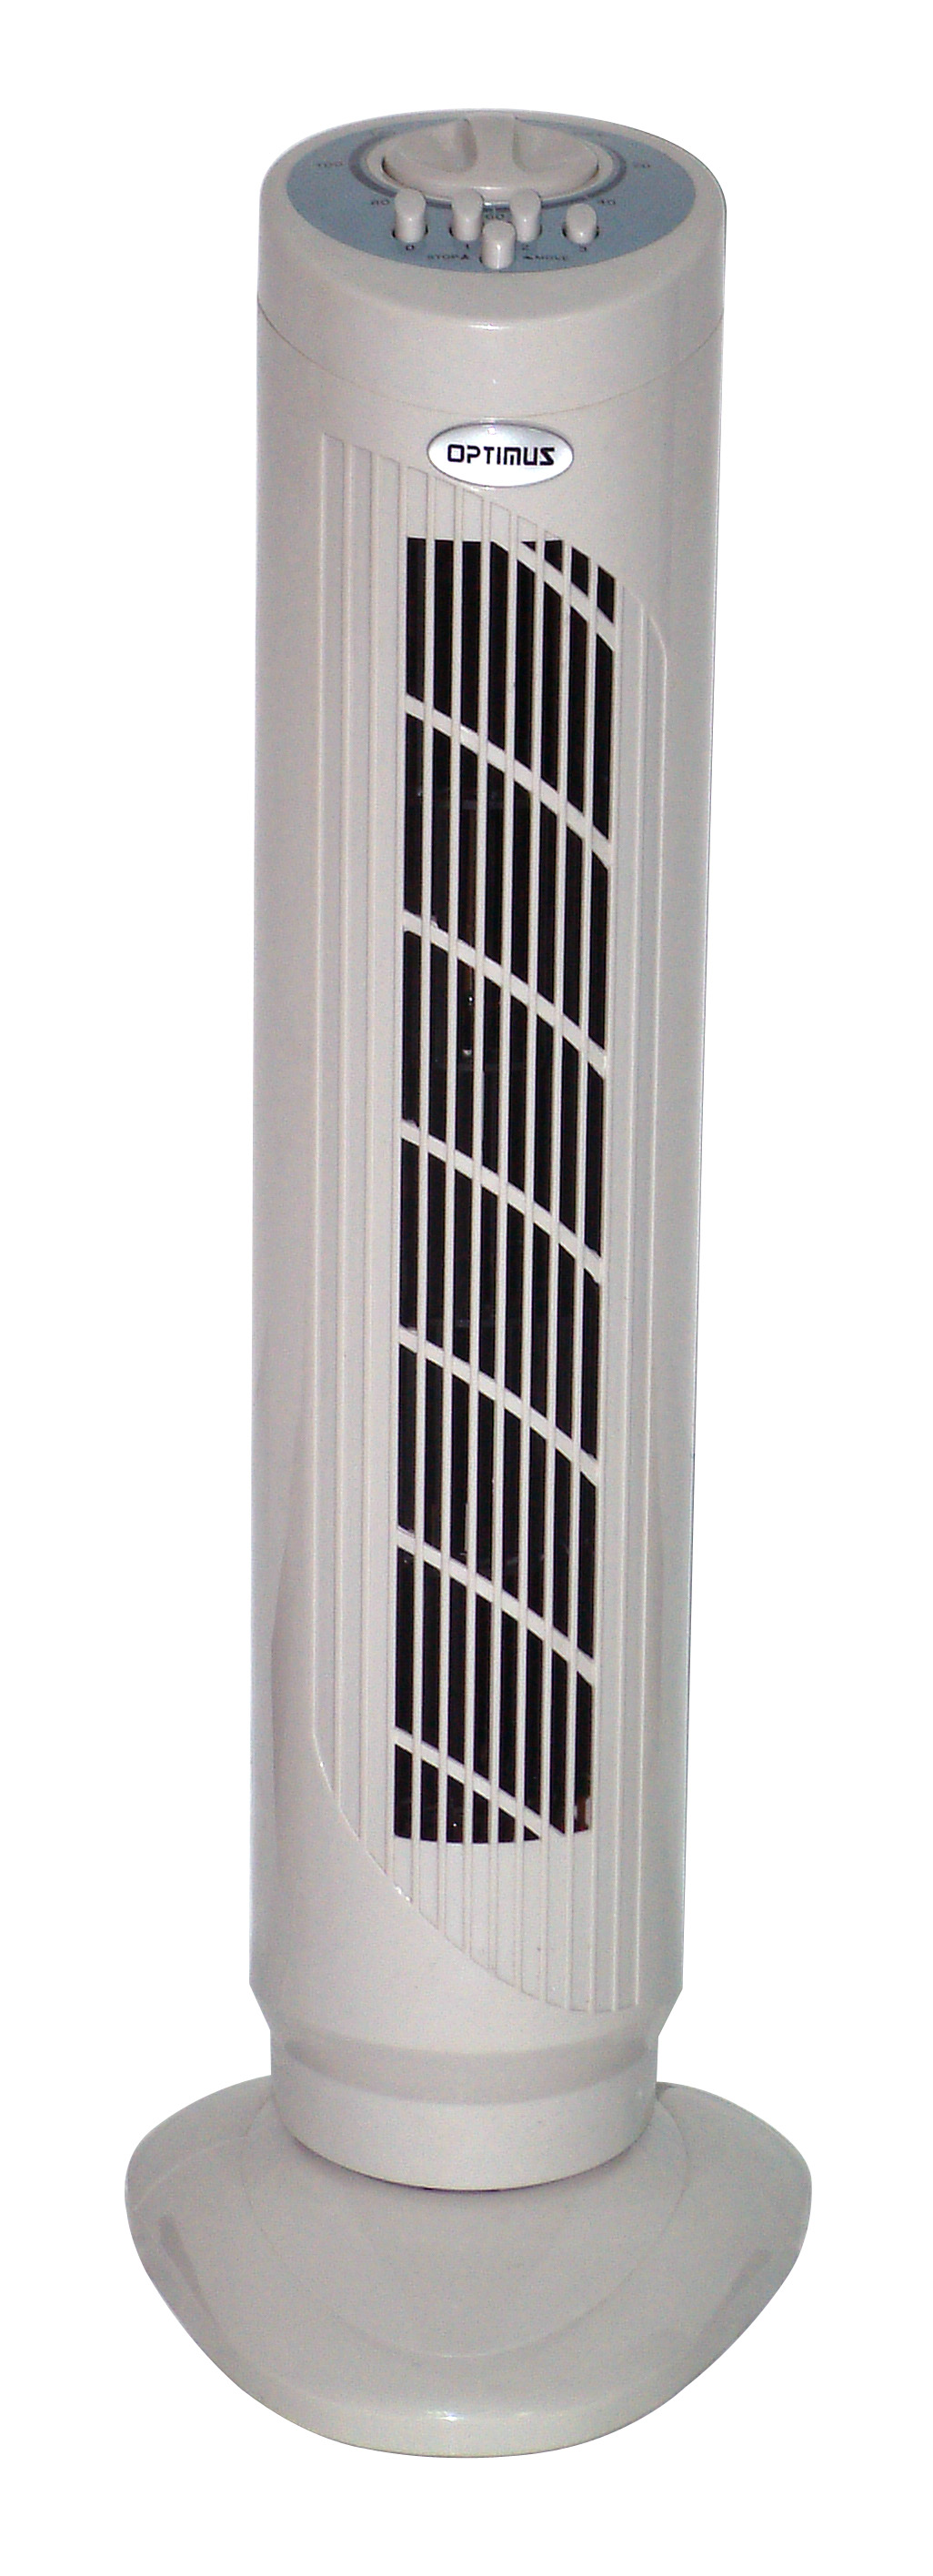 Optimus f7325 fan 30inch tower